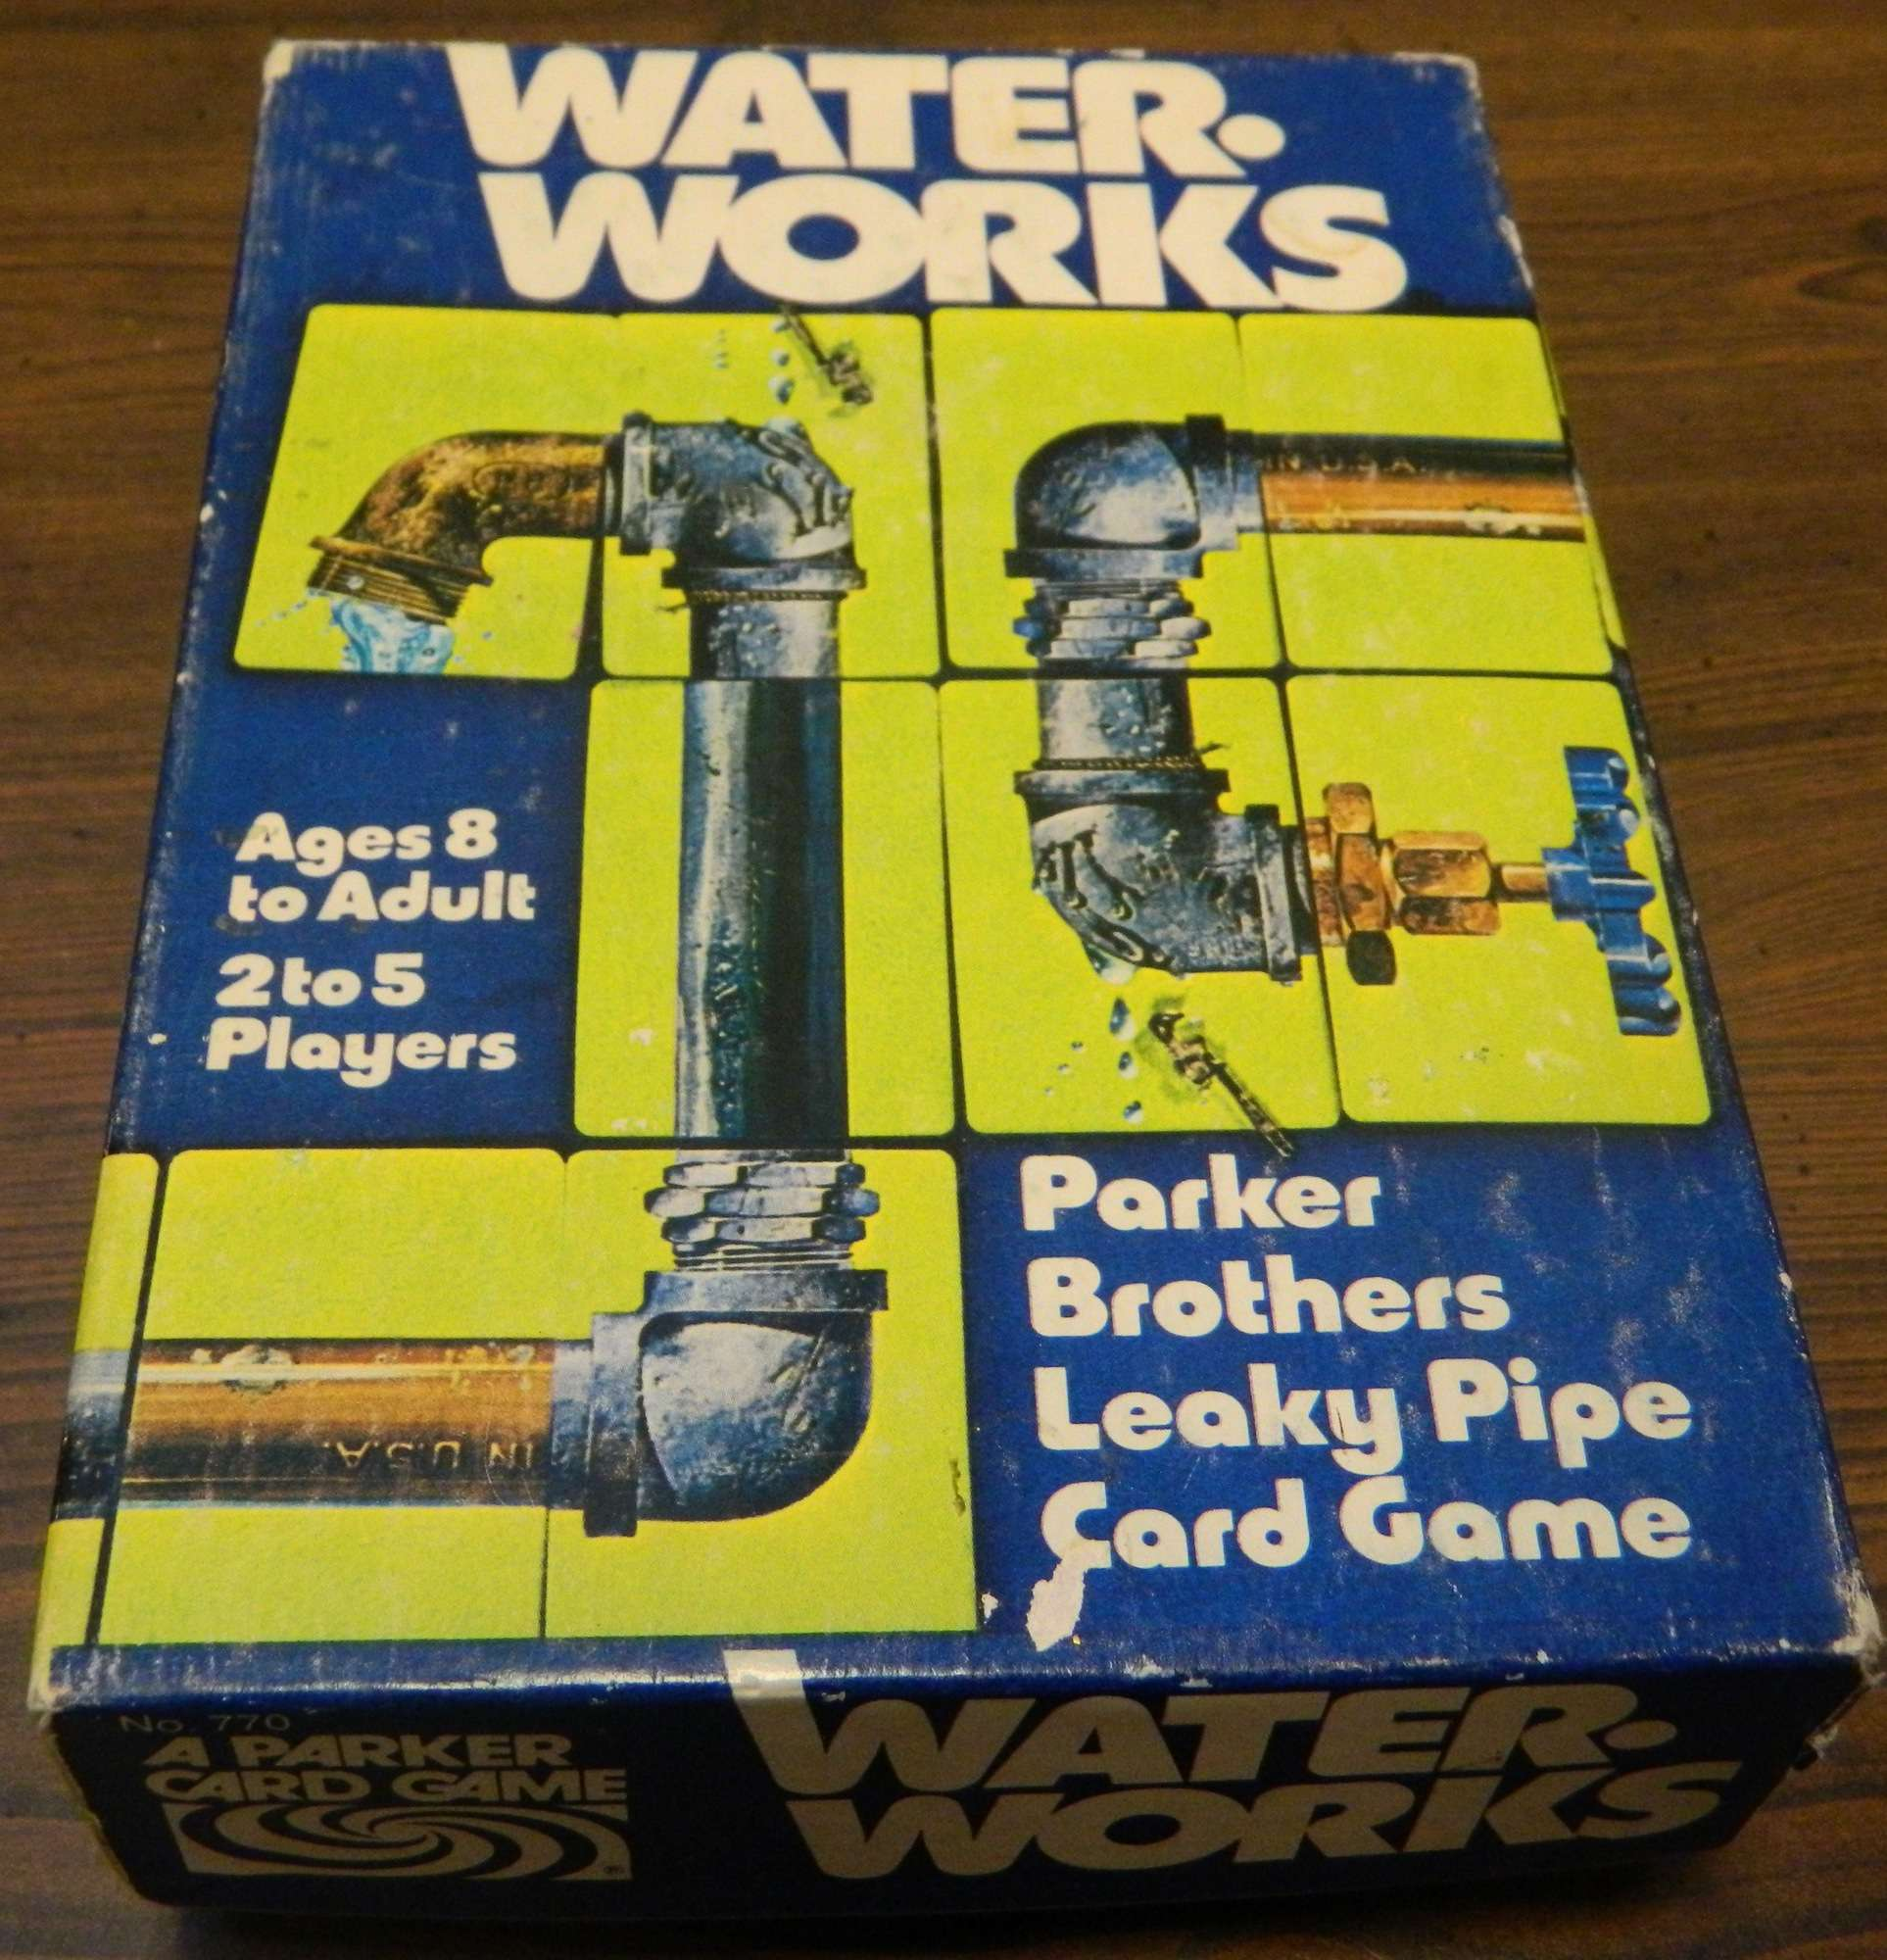 Box for Waterworks